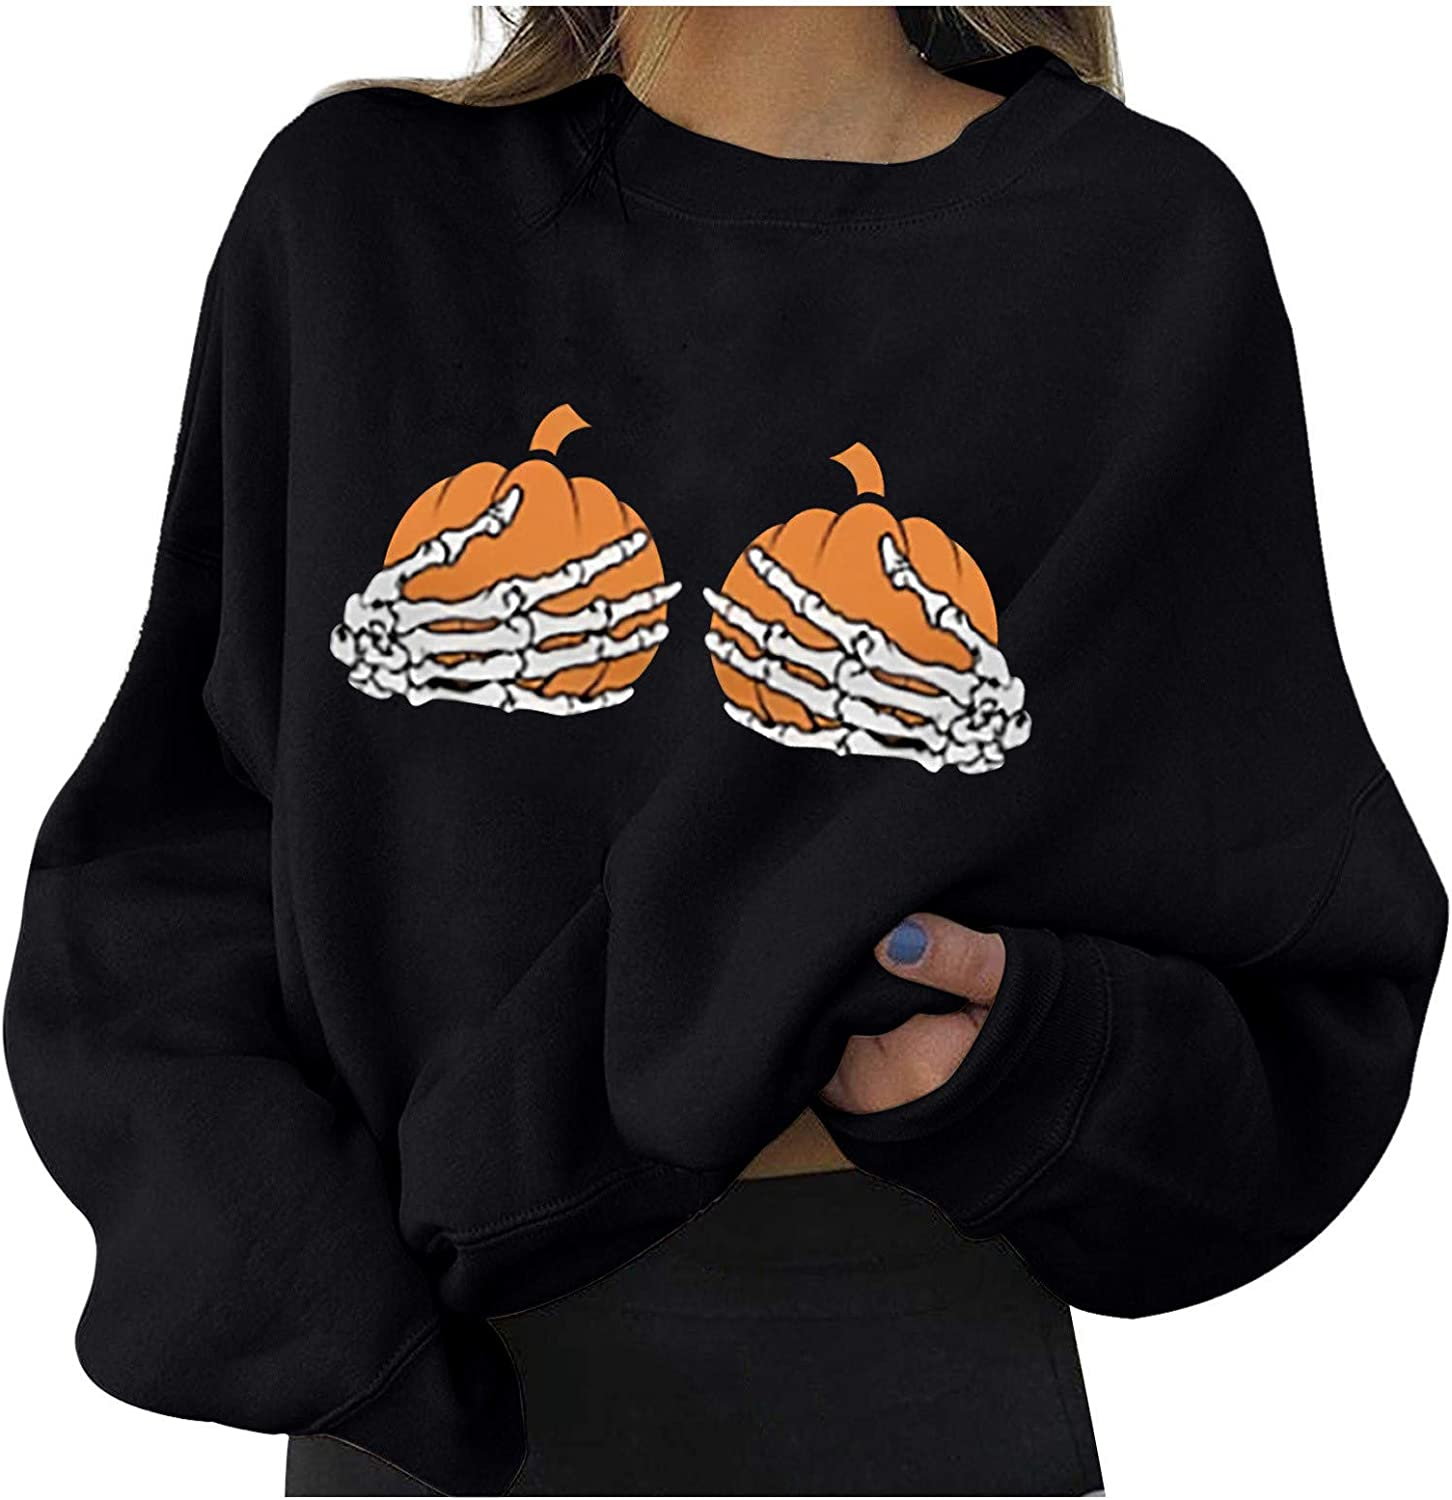 Long Sleeve for Women Cute Pumpkin Printing Pullover Autumn Warm Loose Round Neck Sweatshirt Tops Blouses